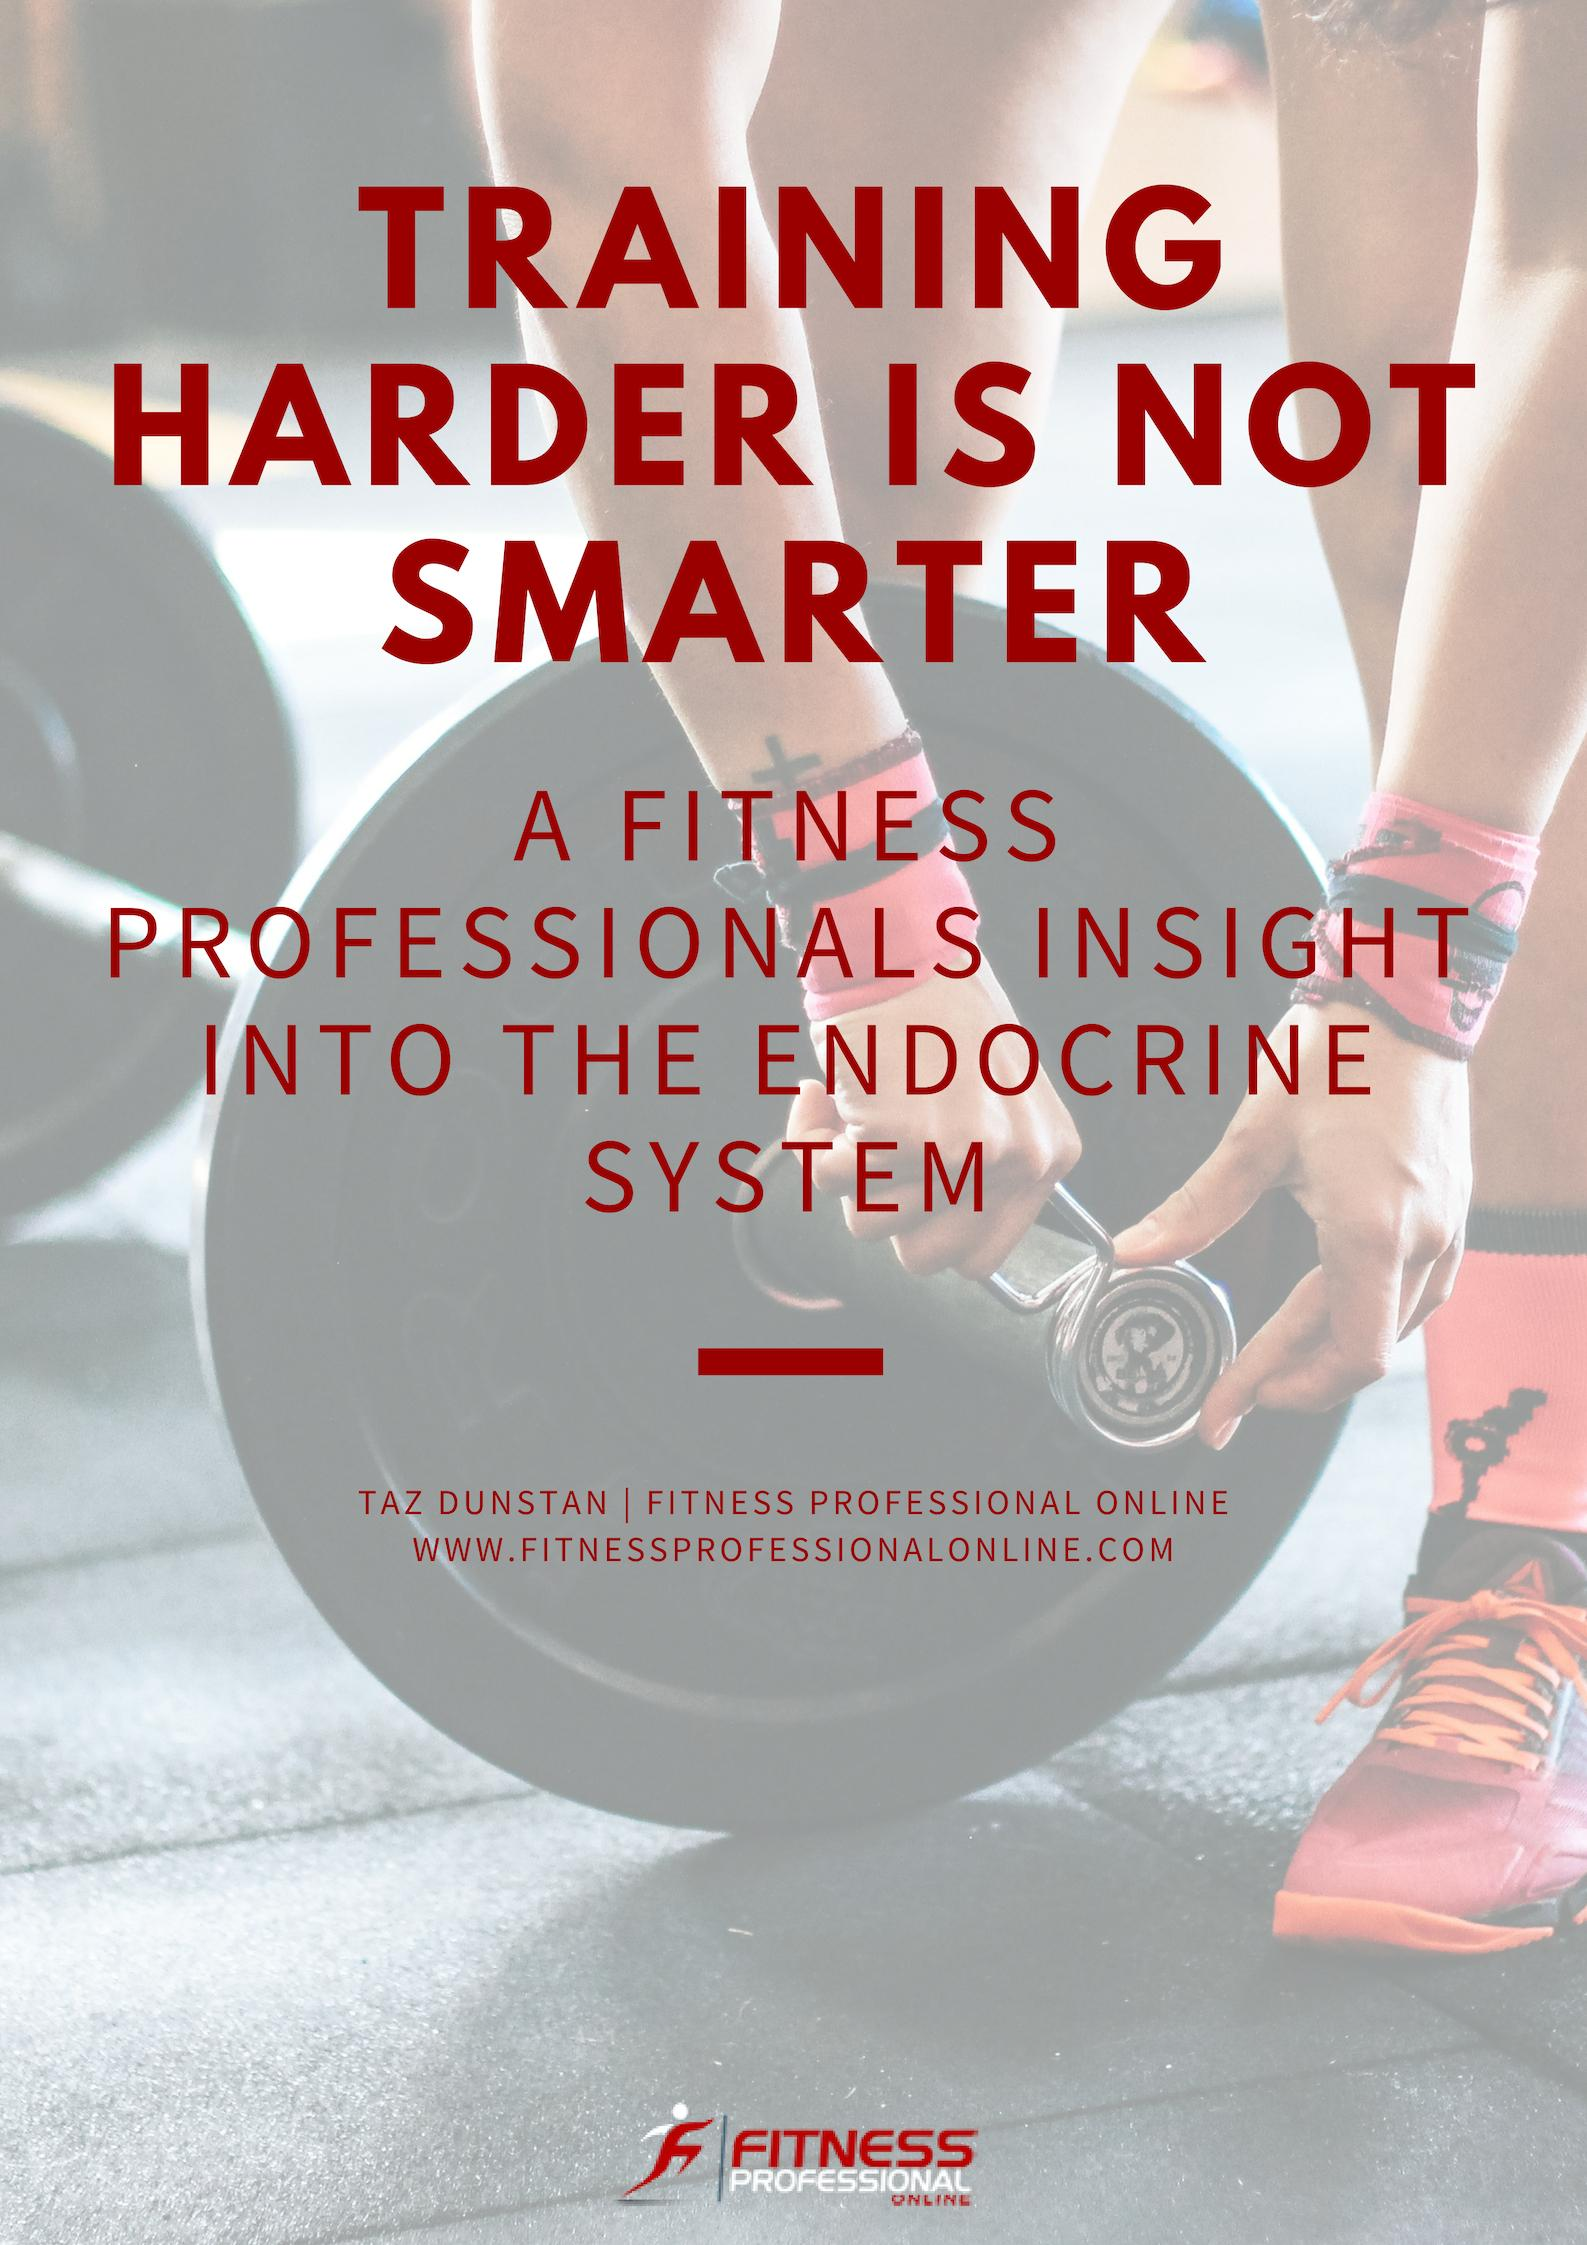 Understanding functional anatomy and the endocrine system is paramount to optimize exercise performance in a safe and effective manner.